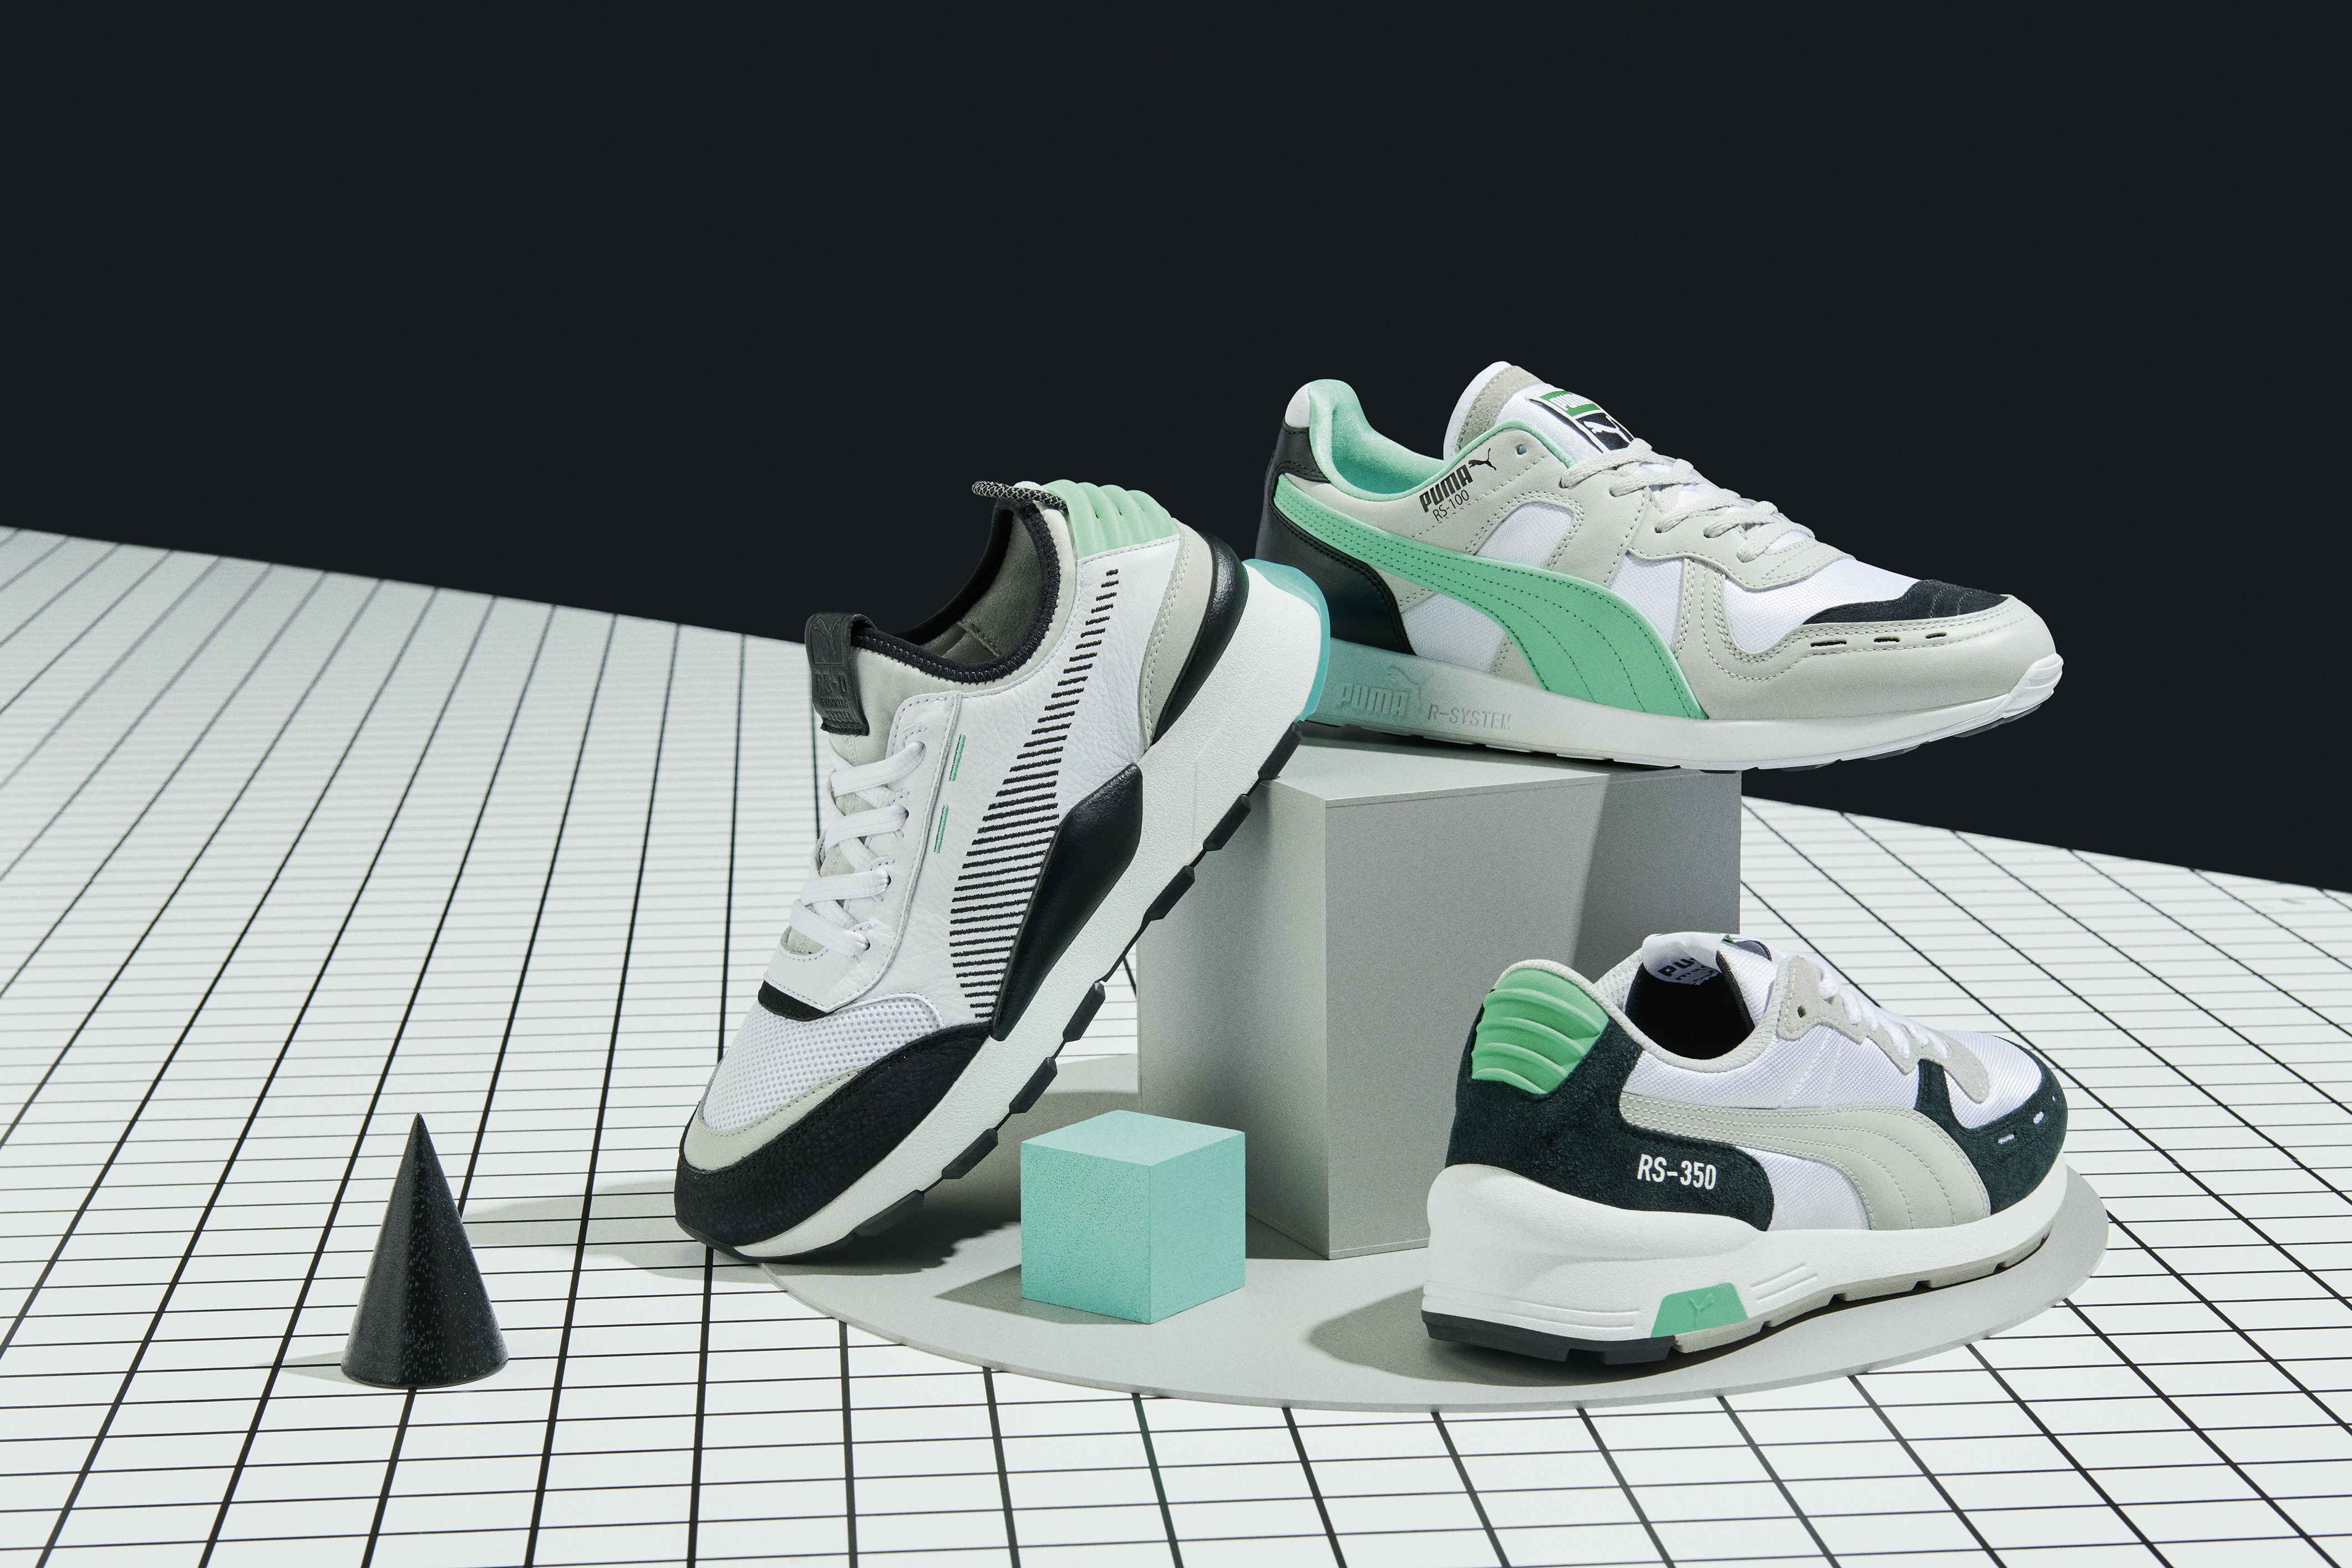 The Puma R System Will Be Getting A